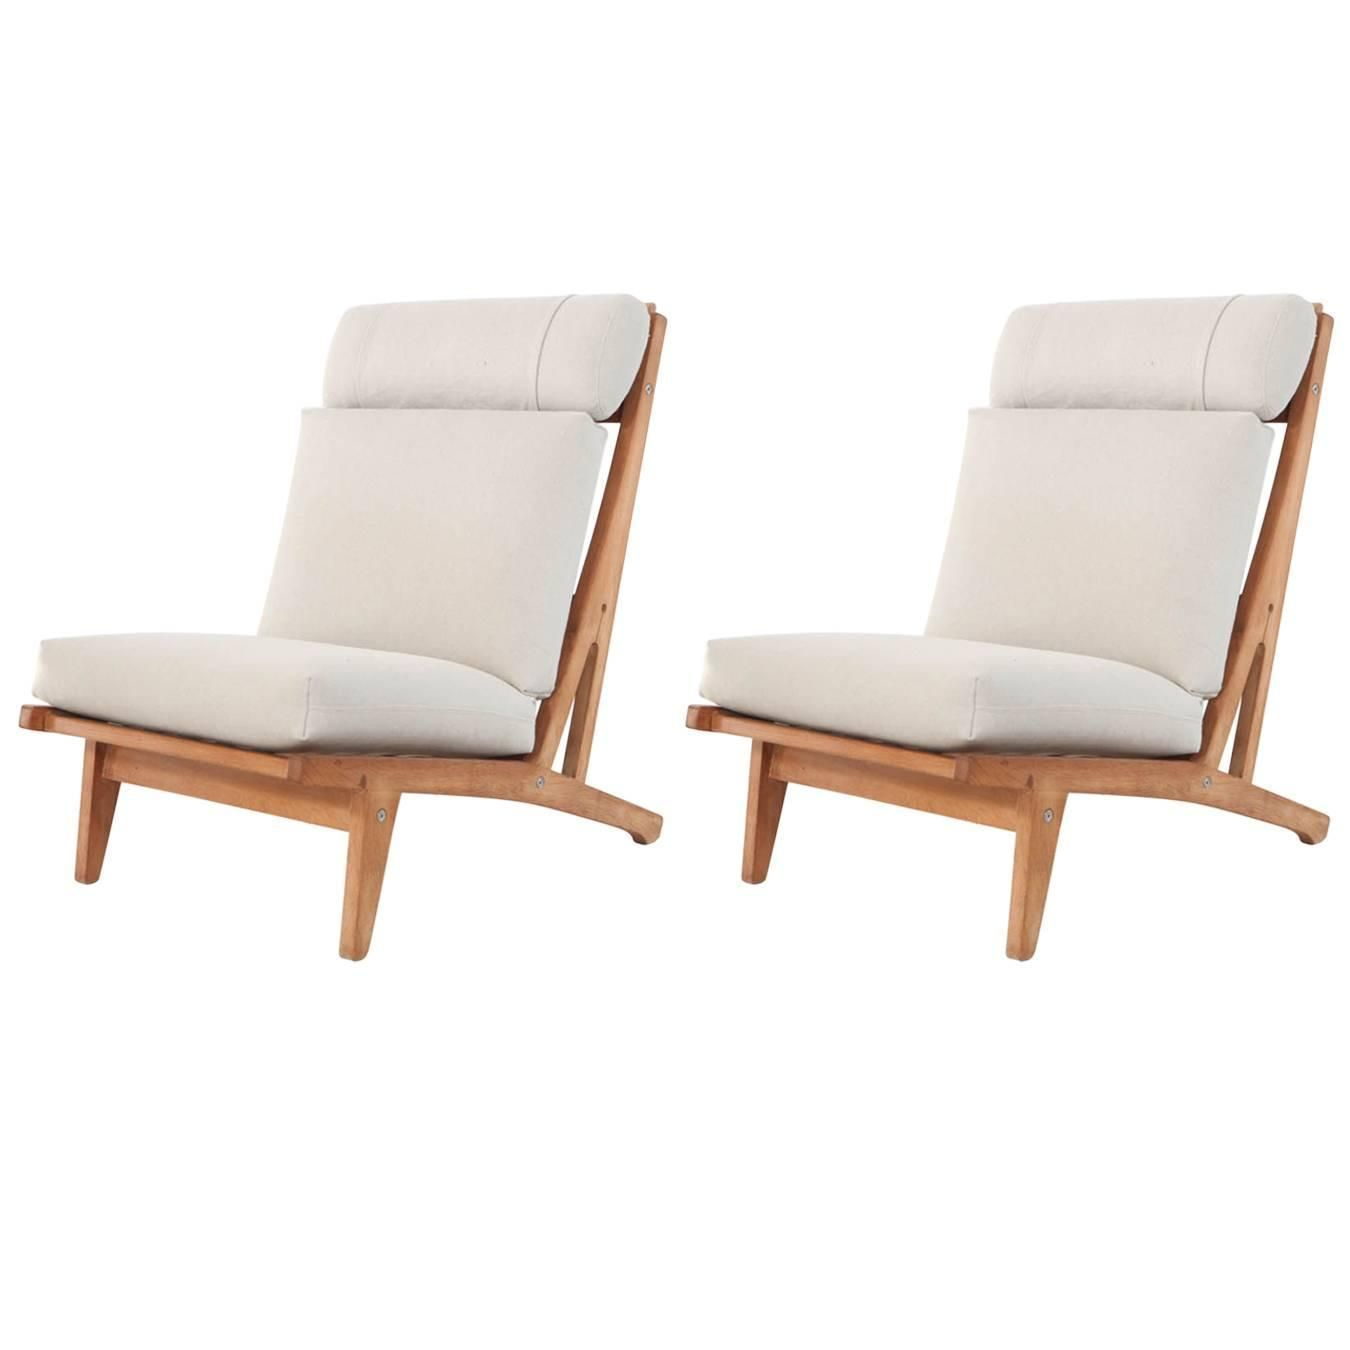 Pair Of Hans Wegner Ge375 Oak Armless Lounge Chairs From A Unique Collection Antique